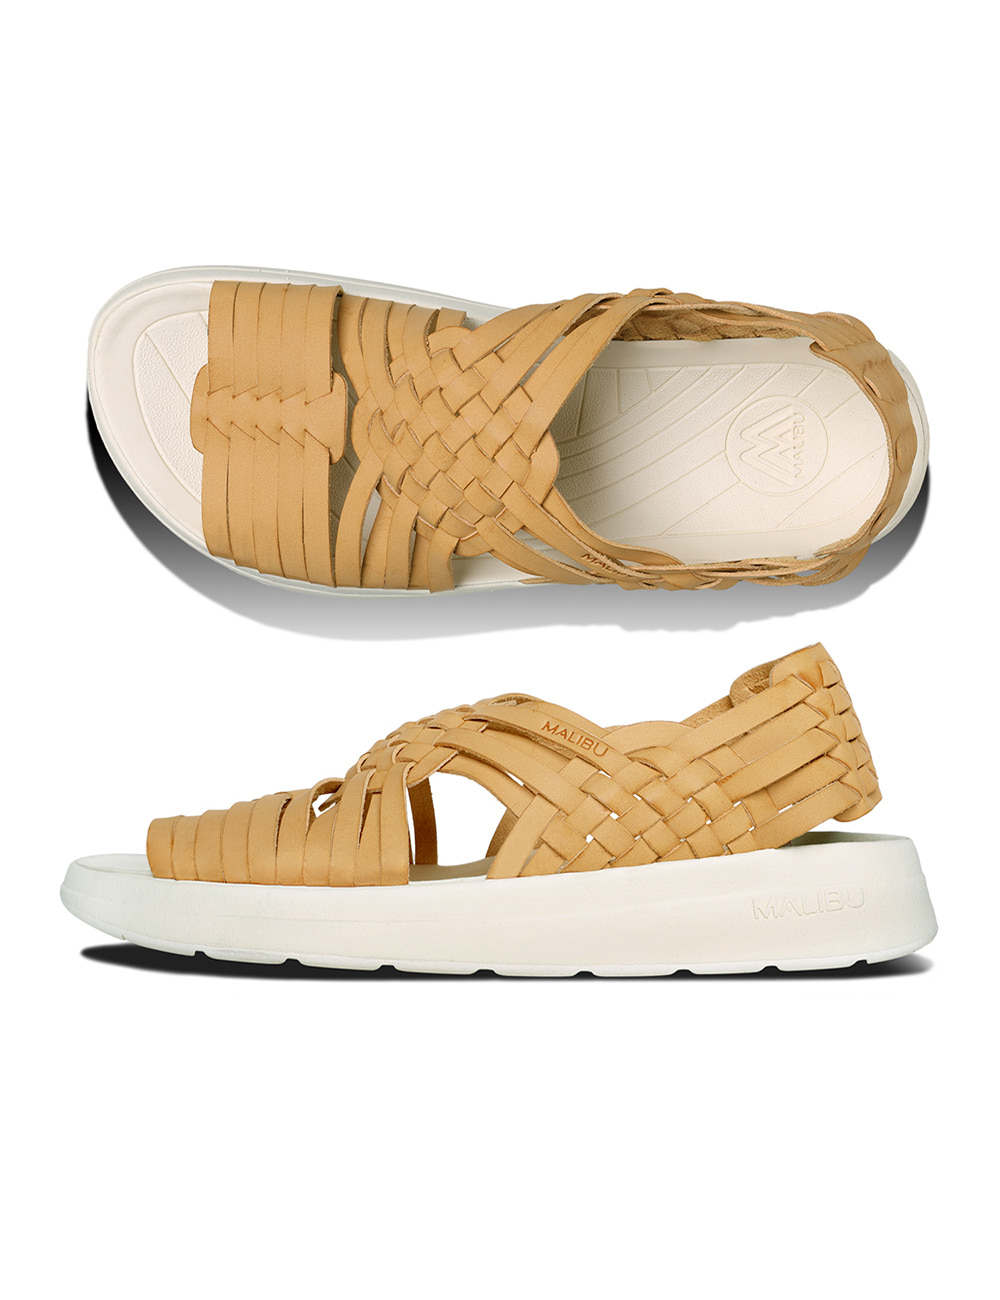 CANYON PU LEATHER (BEIGE/PAPYRUS)